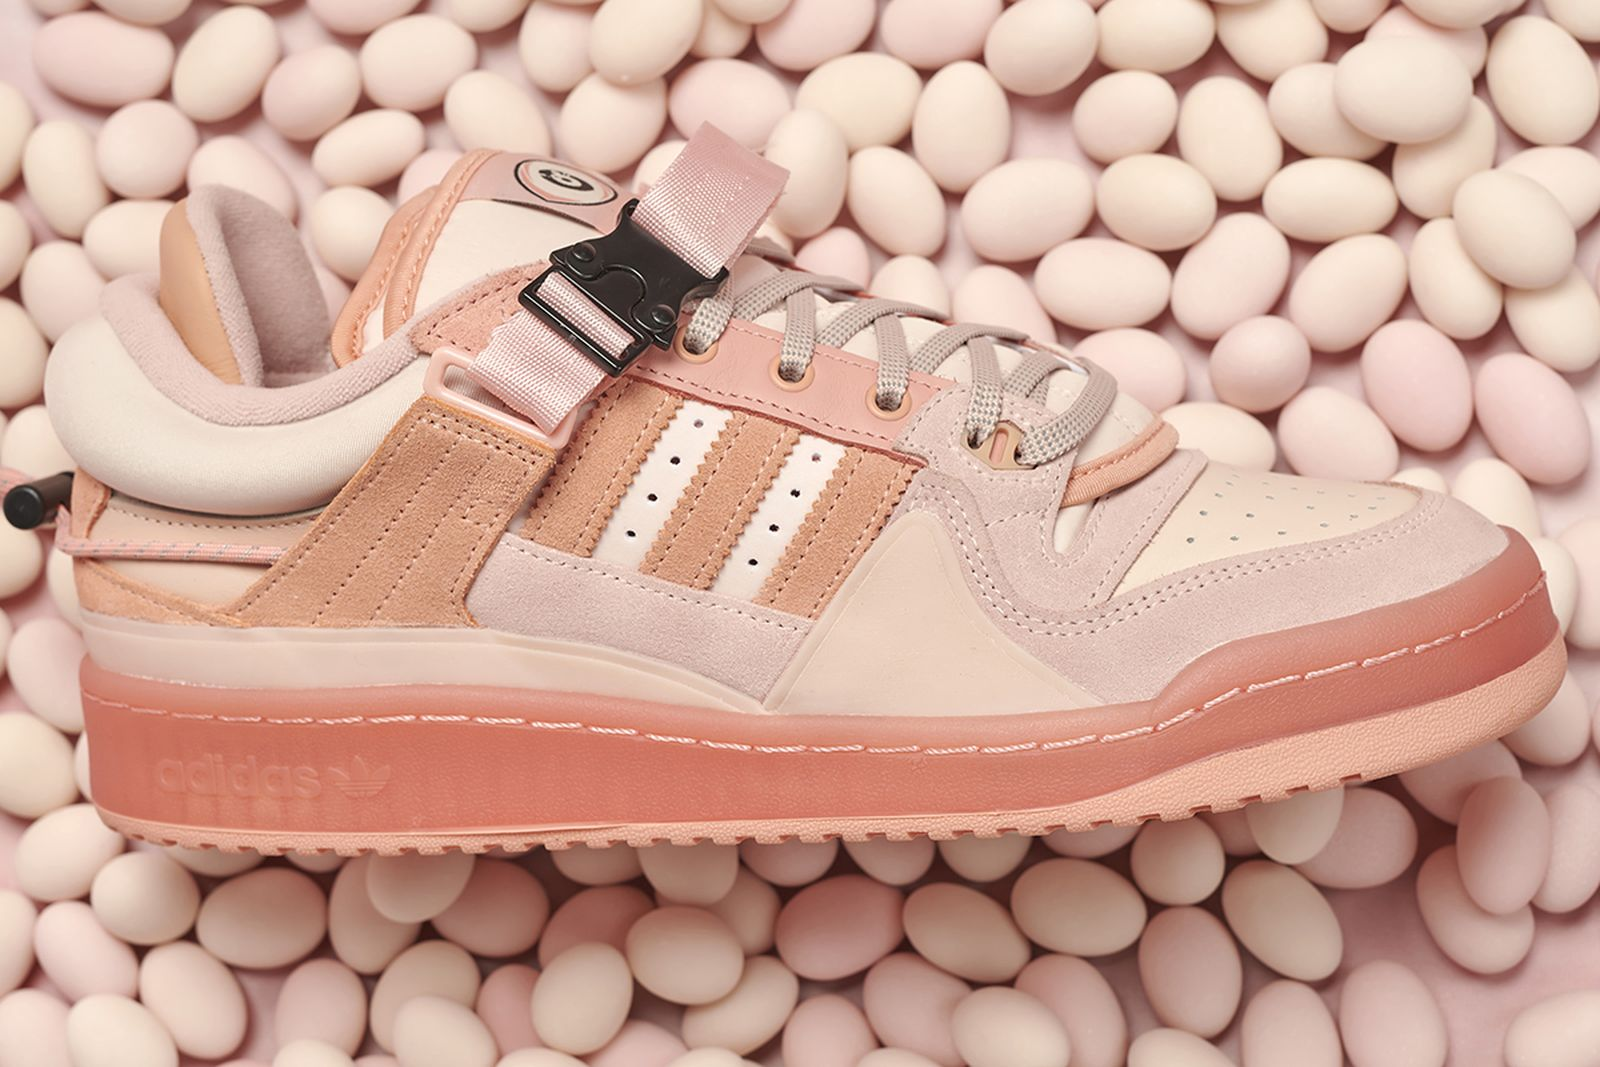 bad-bunny-adidas-forum-buckle-low-pink-release-date-price-02